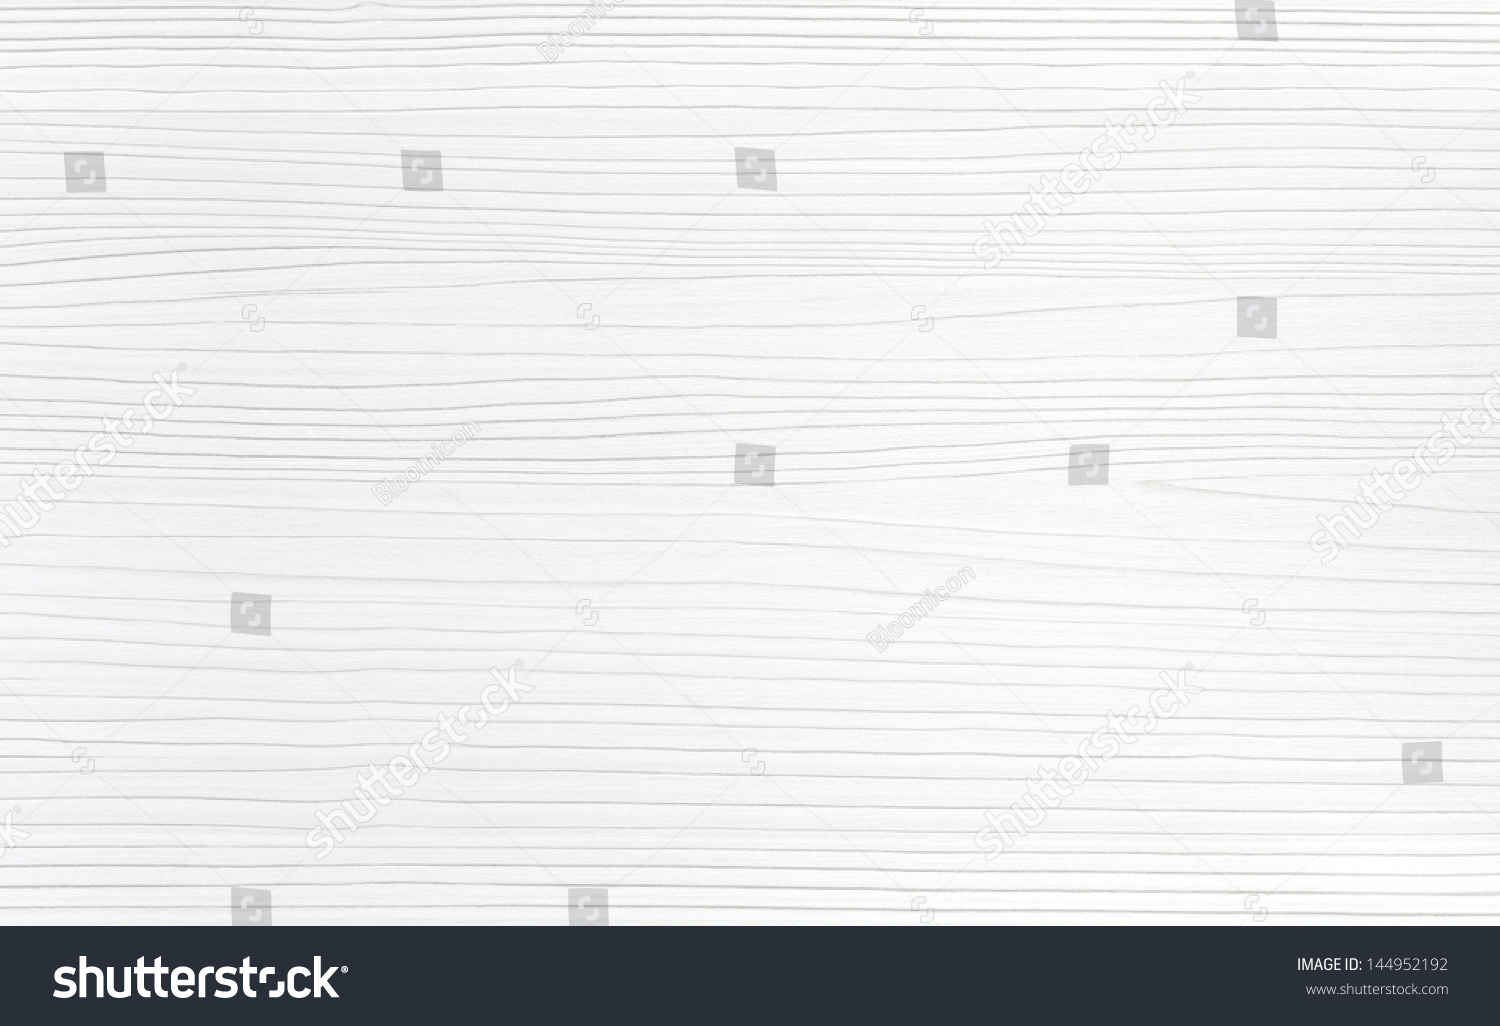 White modern wood texture  Vertical seamless wooden background. White Modern Wood Texture Vertical Seamless Stock Photo 144952192